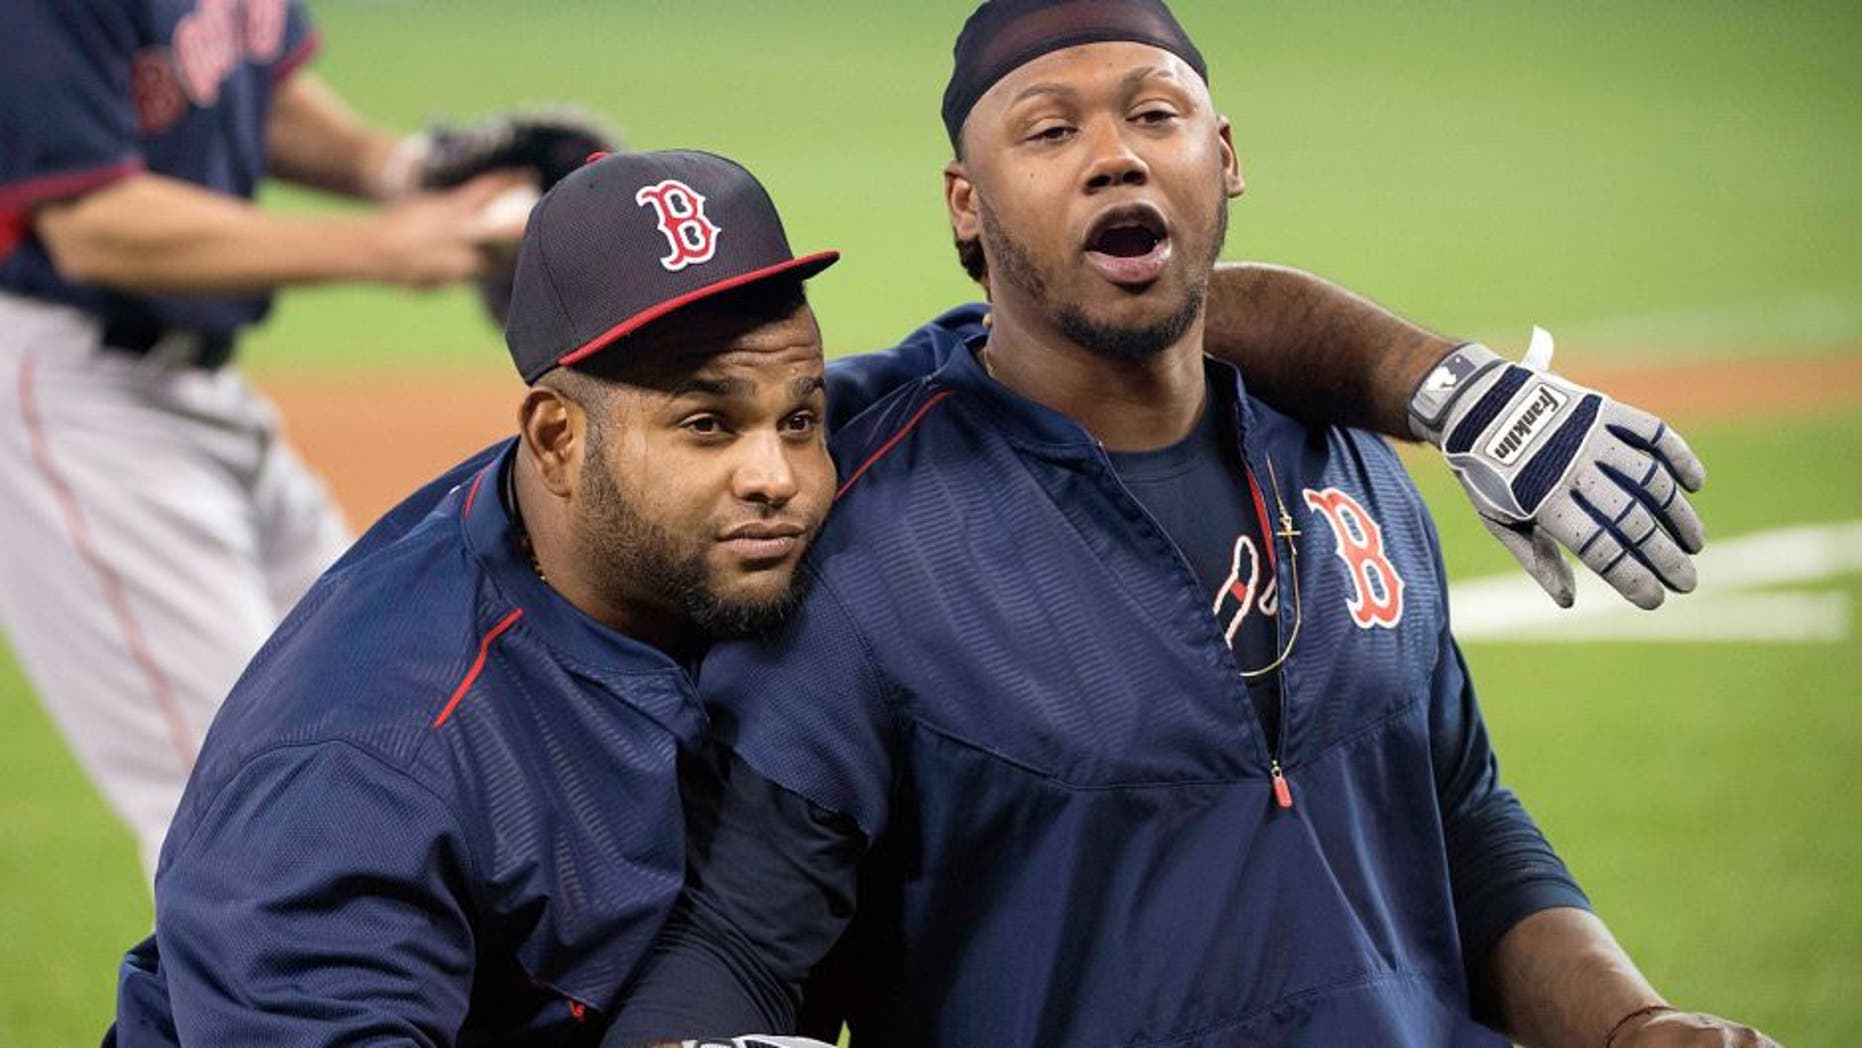 May 9, 2015; Toronto, Ontario, CAN; Boston Red Sox third baseman Pablo Sandoval (48) and Boston Red Sox left fielder Hanley Ramirez (13) during batting practice before a game against the Toronto Blue Jays at Rogers Centre. Mandatory Credit: Nick Turchiaro-USA TODAY Sports